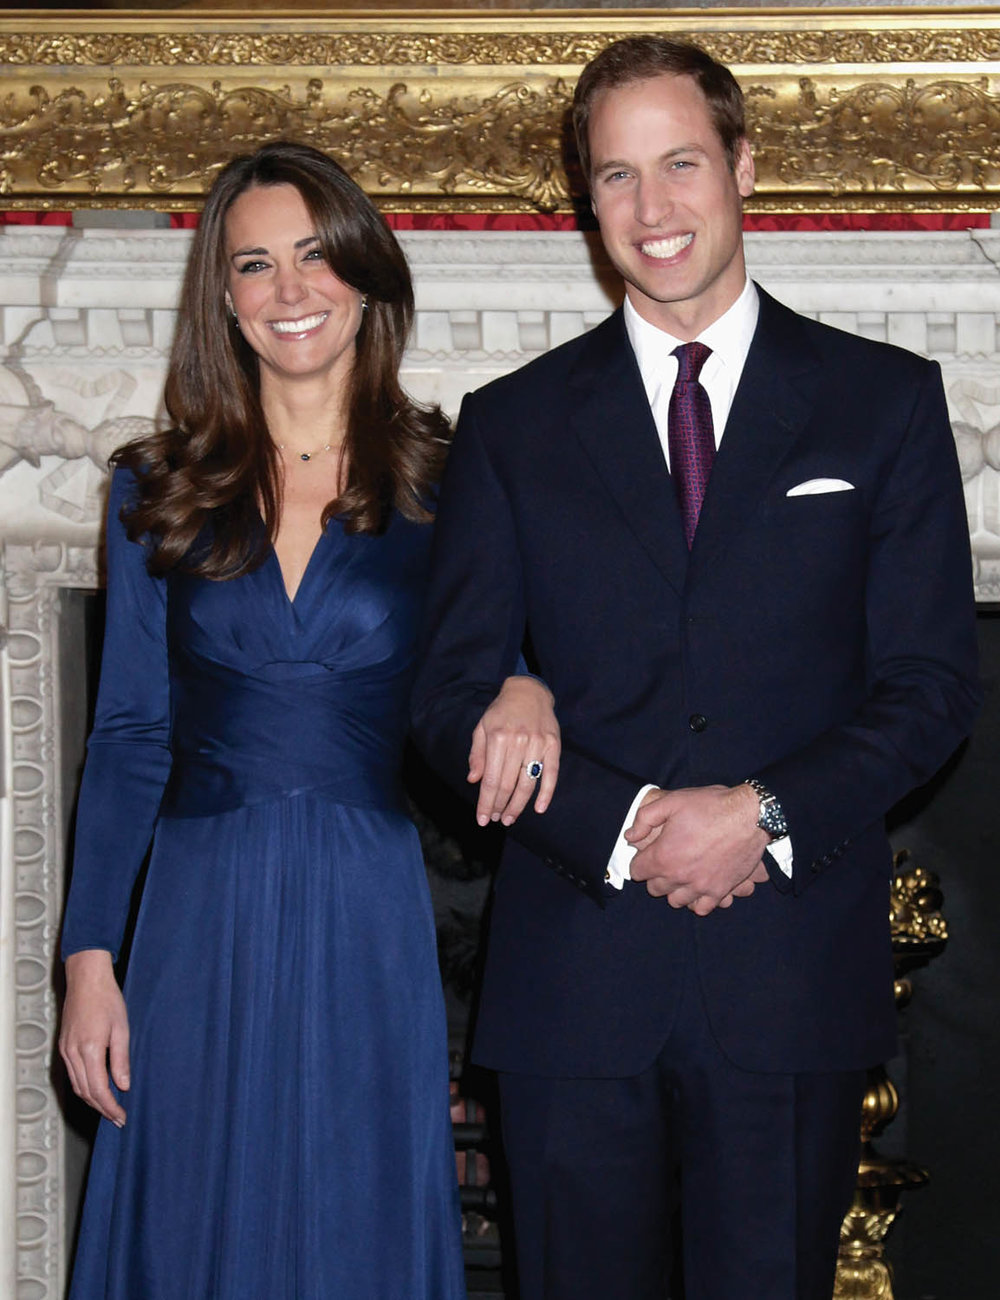 In 2010, Prince William wore a dark navy suit by Gieves & Hawkes for his engagement announcement